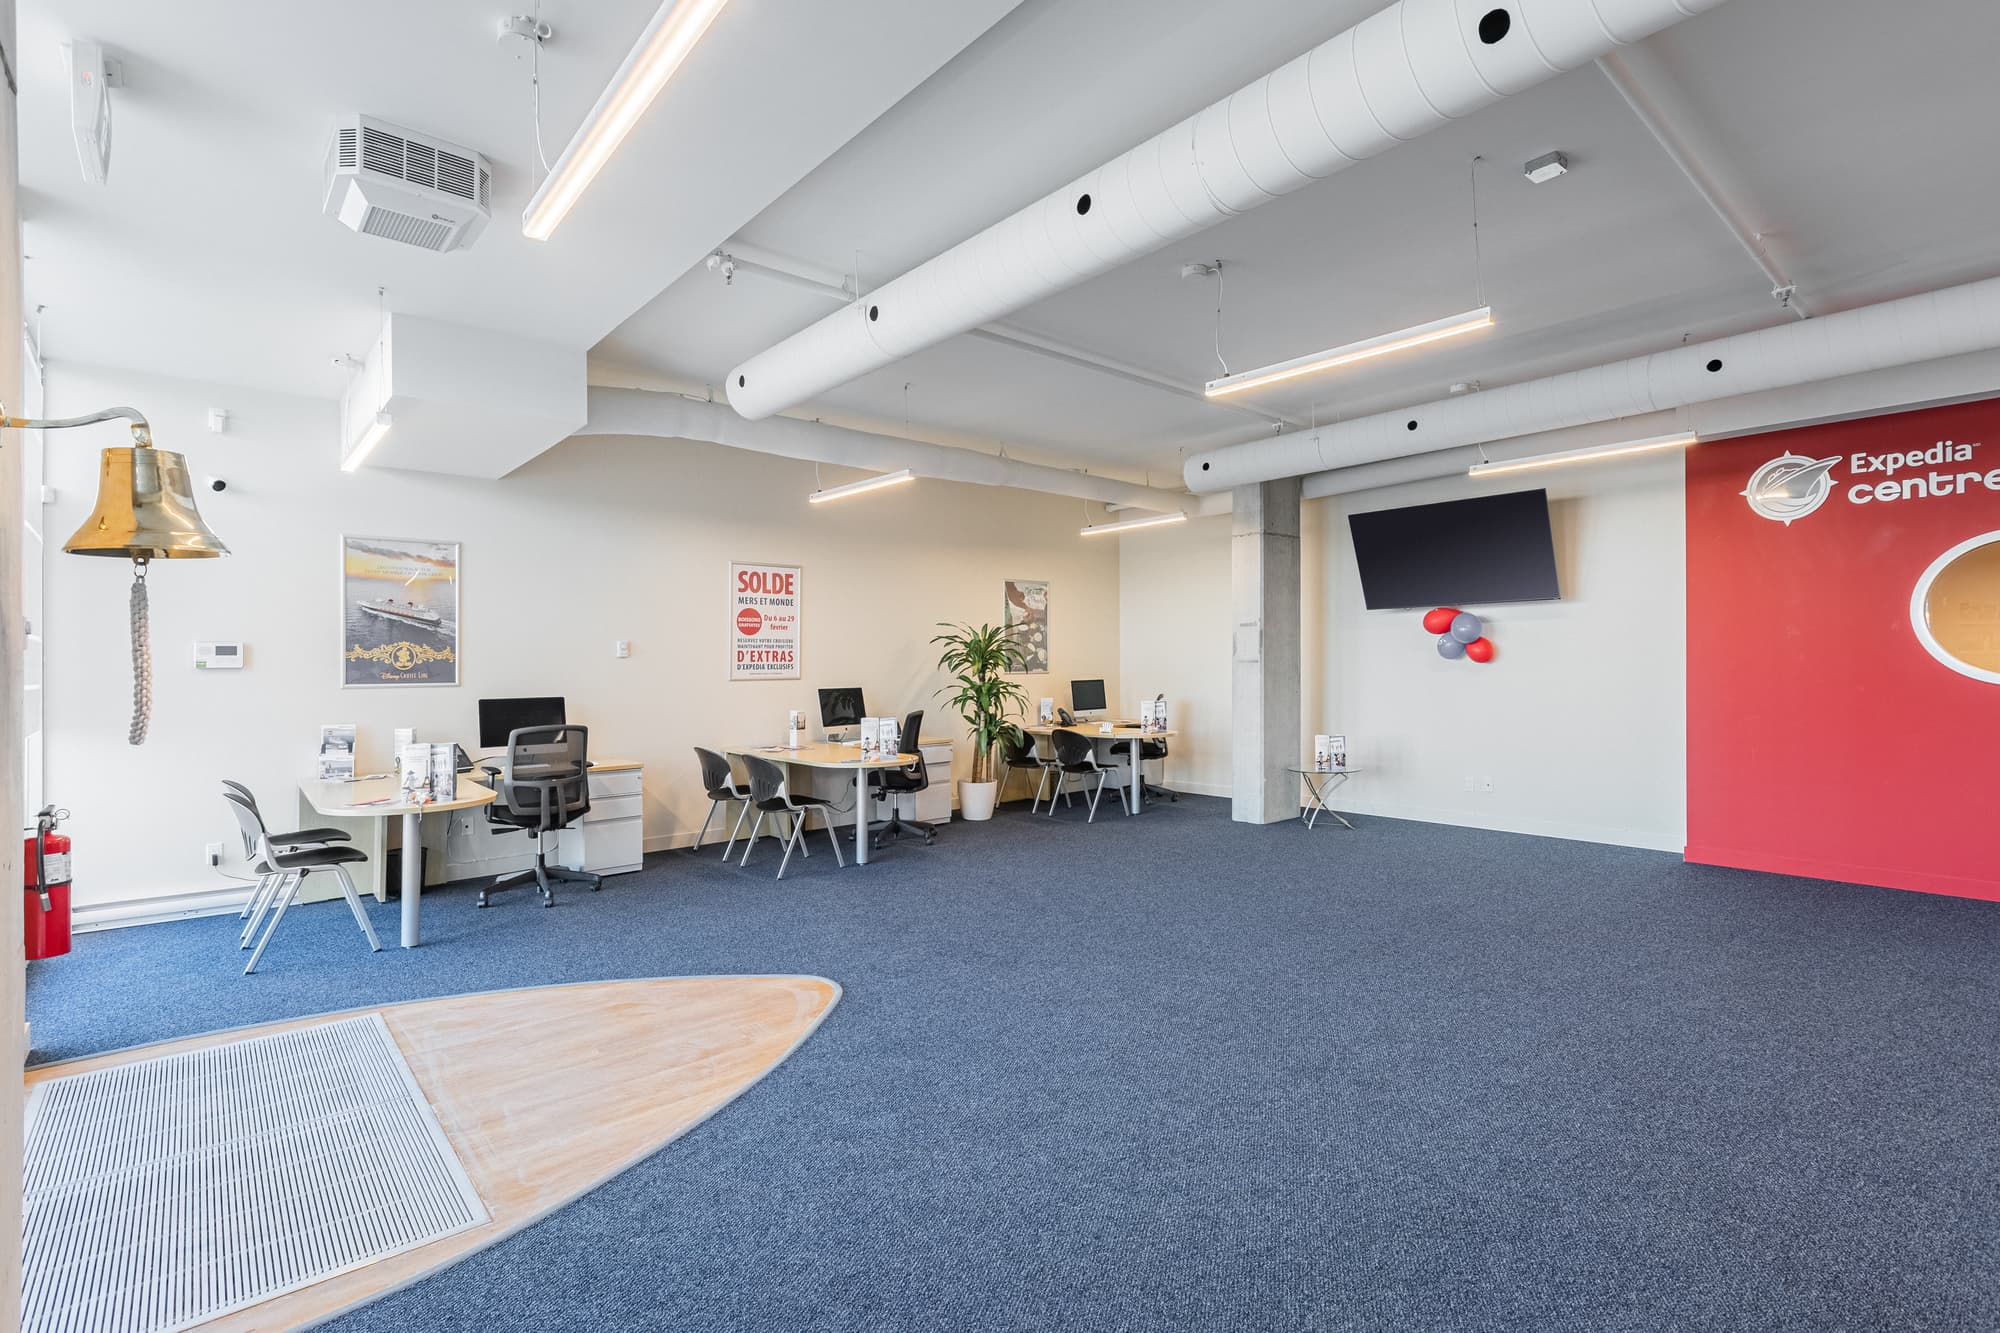 commercial renovation of a Expedia CruiseShipCenters with blue carpet and red accent wall